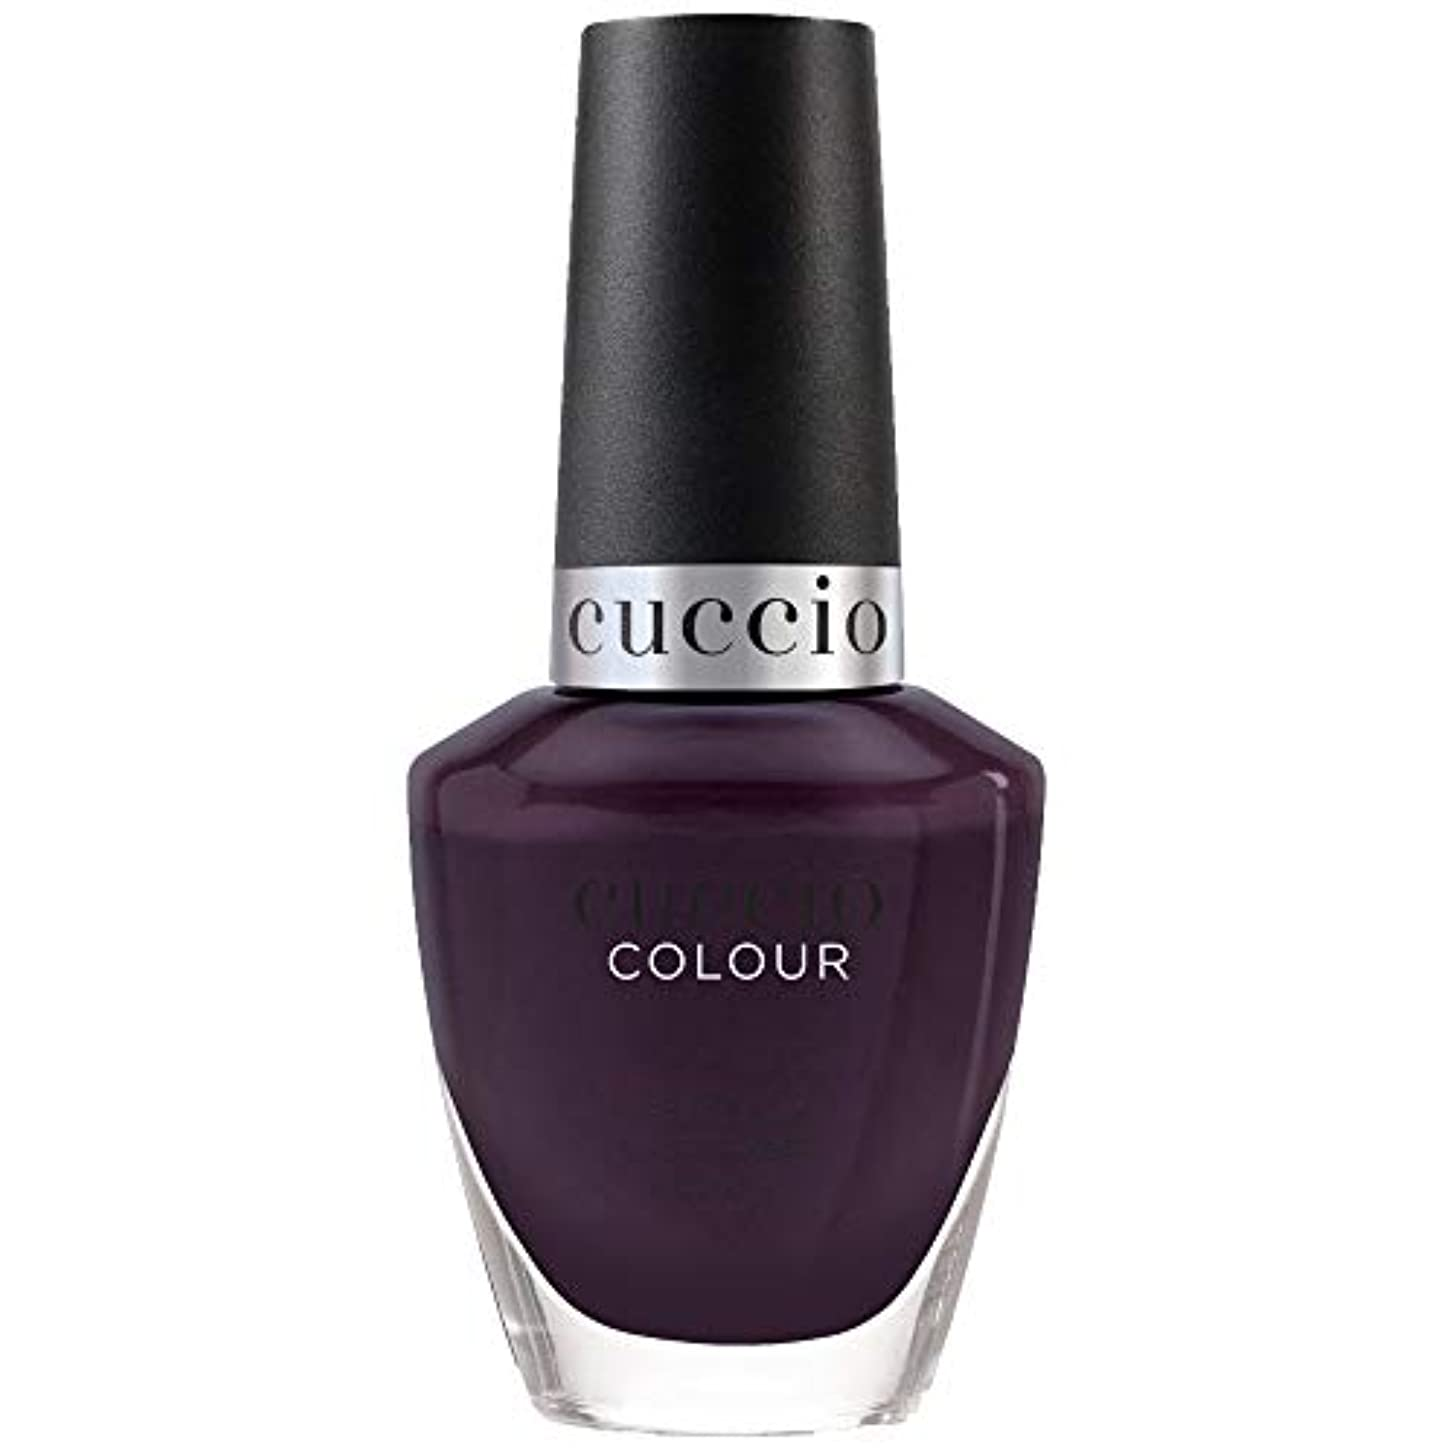 ハンカチ同封するタンザニアCuccio Colour Nail Lacquer - Tapestry Collection - Quilty As Charged - 13 mL / 0.43 oz